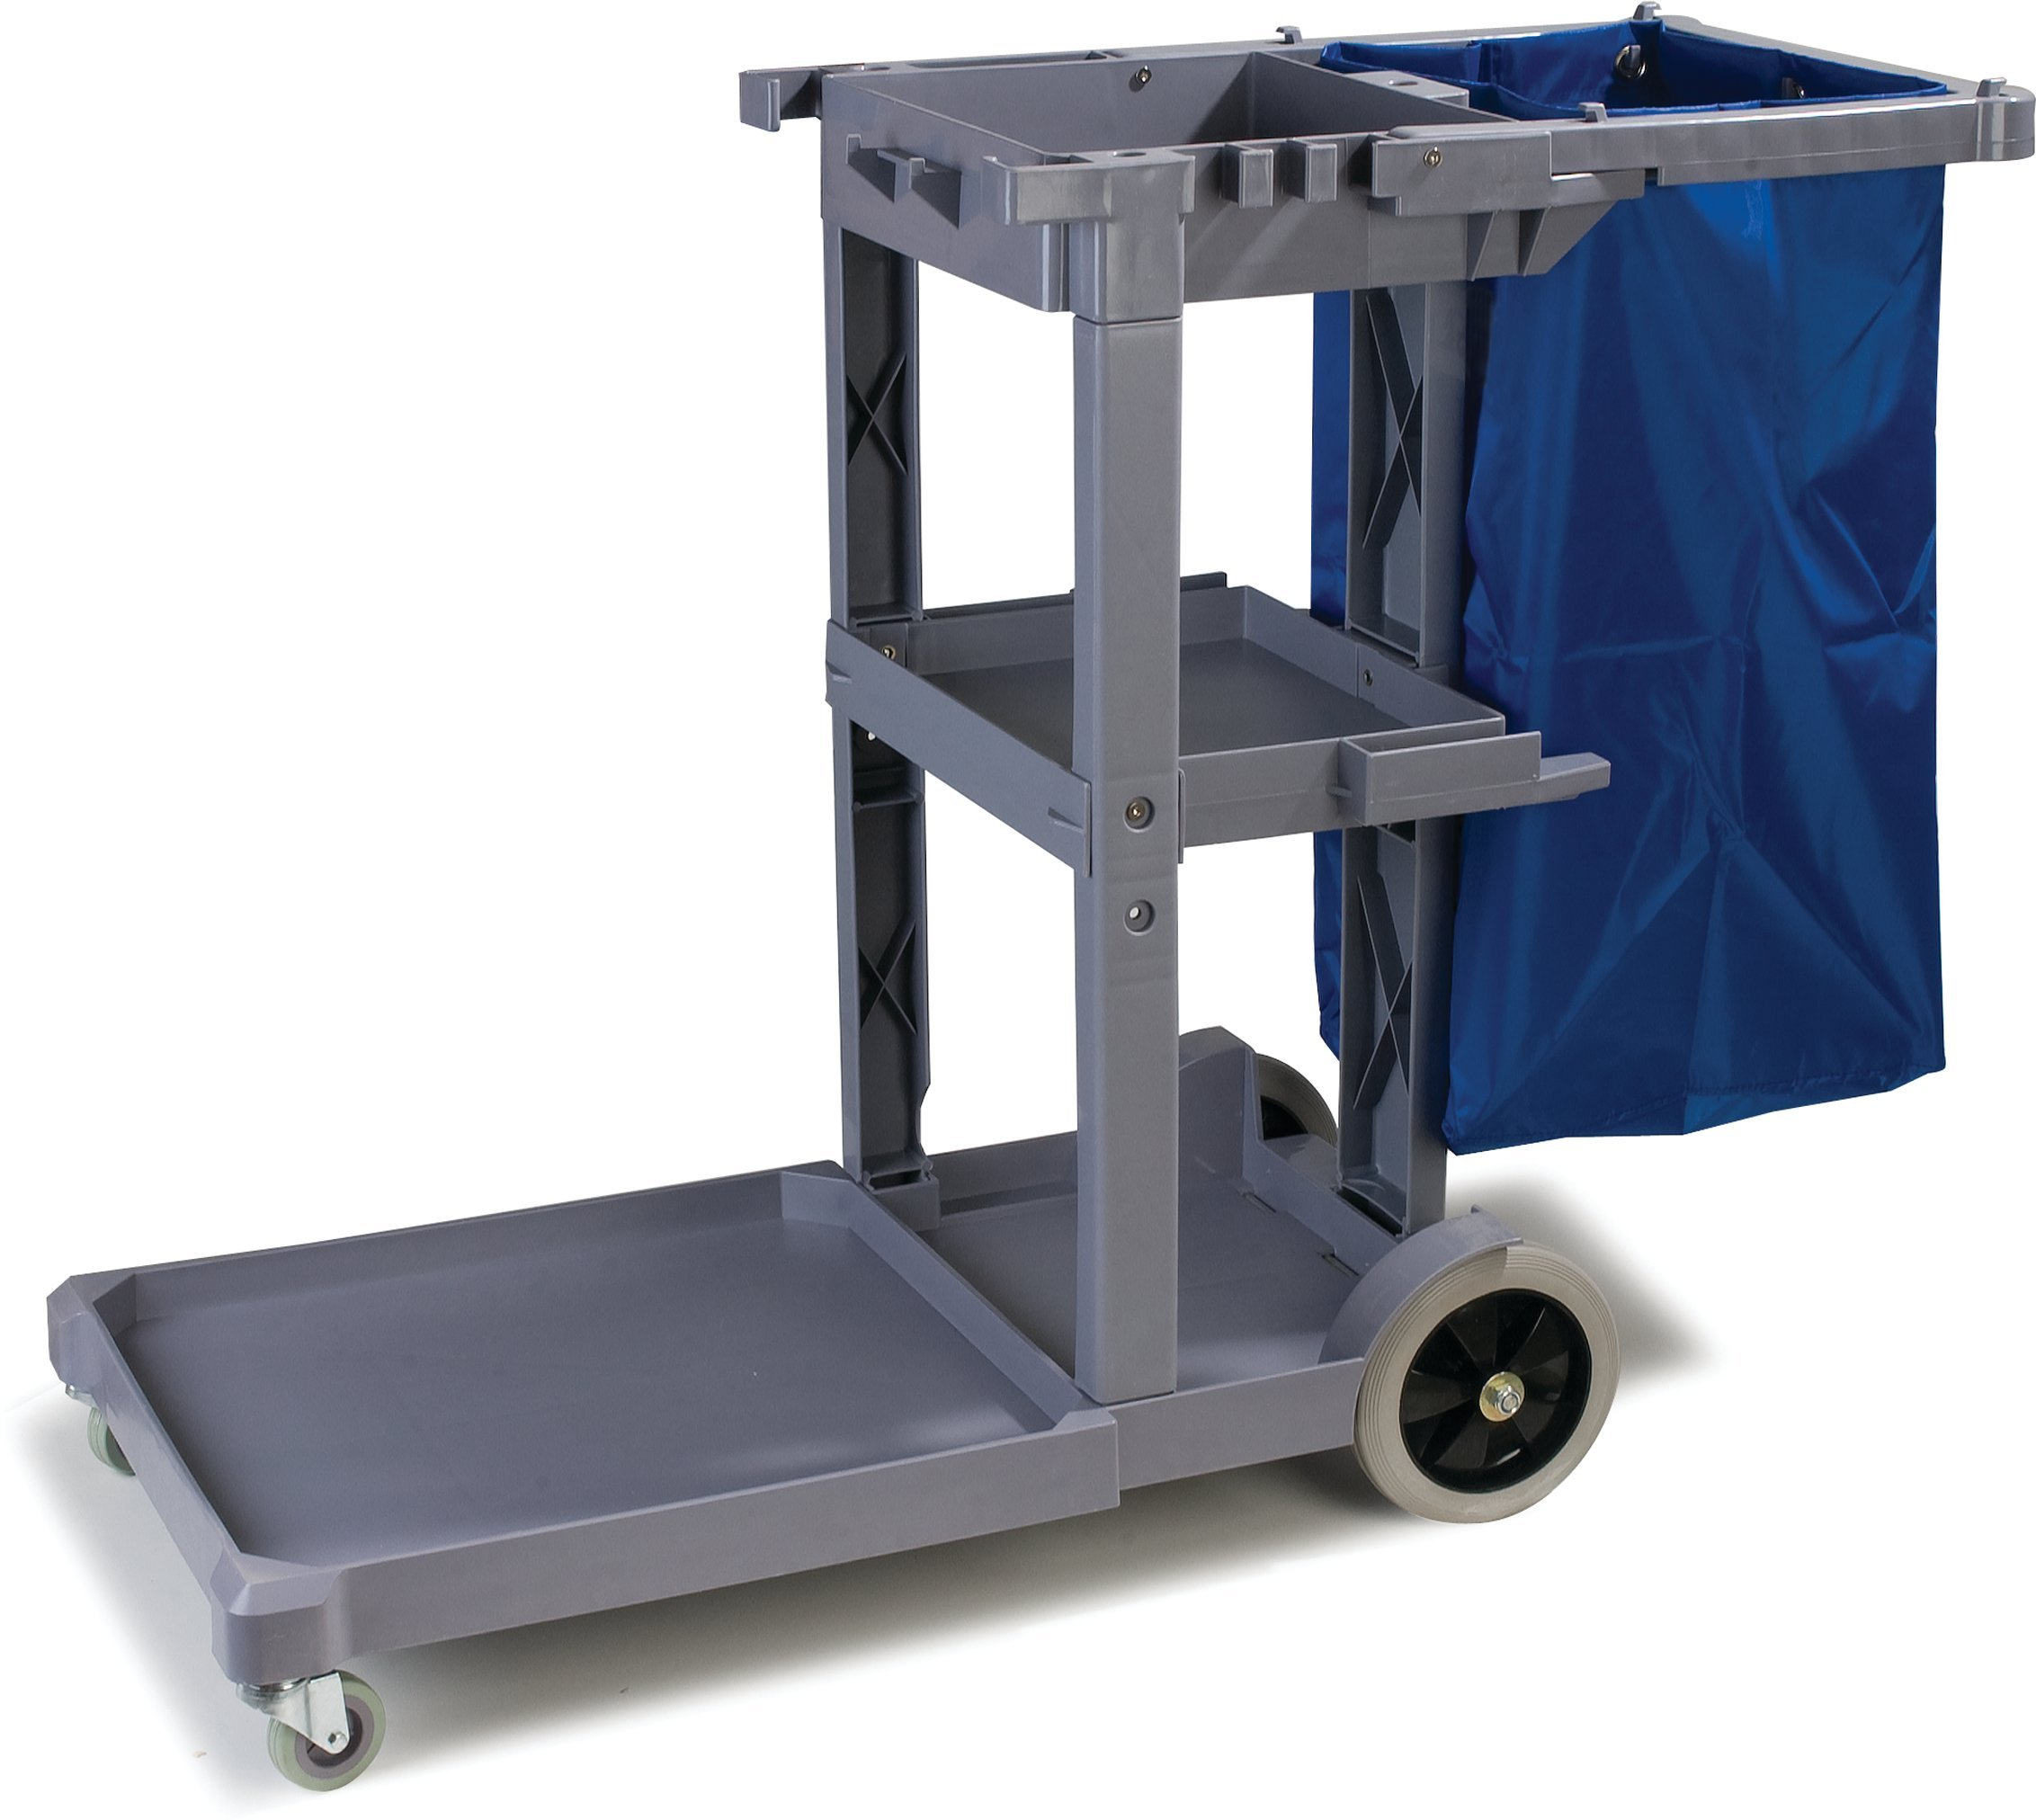 Carlisle JC1945L23 Polyethylene Long Platform Janitorial Cart, 300 lbs Capacity, 49'' Length x 19'' Width 39'' Height, Gray by Carlisle